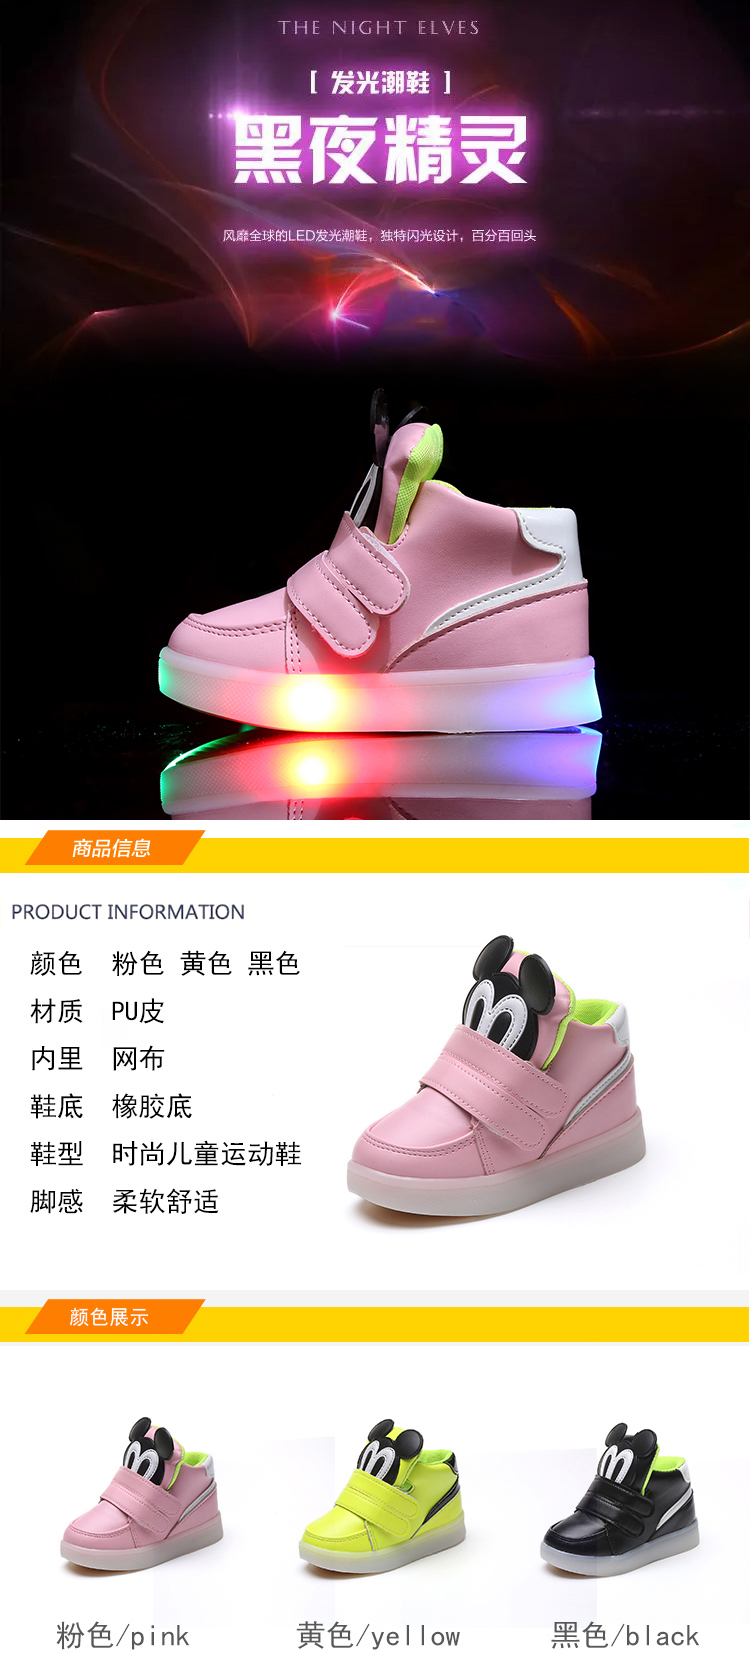 Children Shoes With Light Led Boys Sneakers 2017 New Spring Lustybunny Baby Motive Round 21 Cokelat Muda Htb1j83cpvxxxxc0afxxq6xxfxxxpsize559457height1676width750hash4d30ec9e47af194c36723069bbc7596d